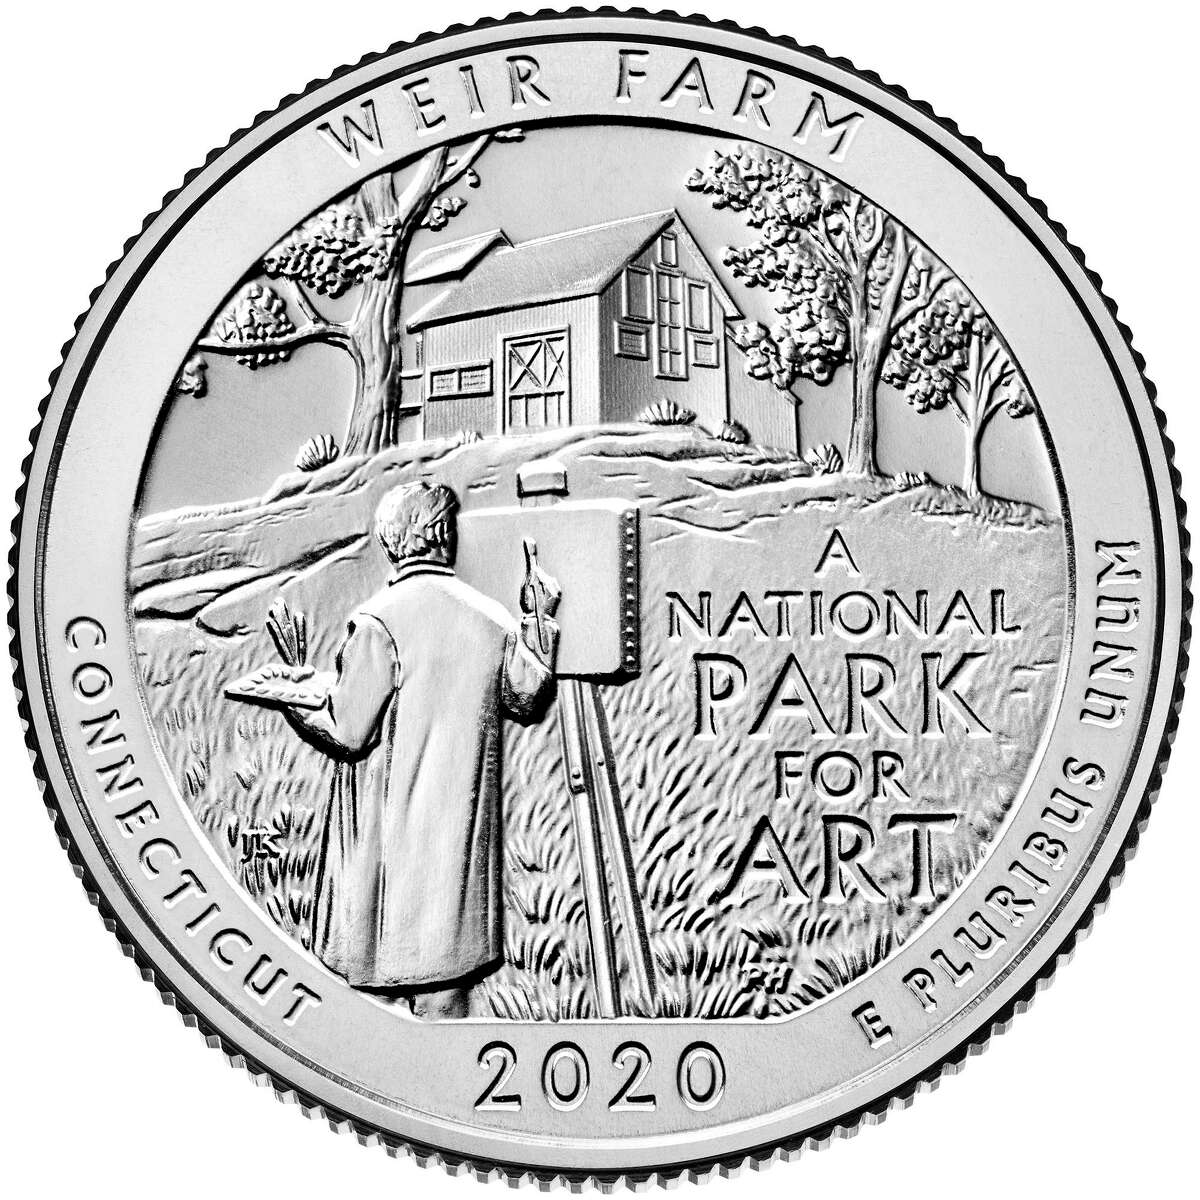 The U.S. Mint has released a new quarter in its America the Beautiful series honoring Weir Farm National Historic Site.